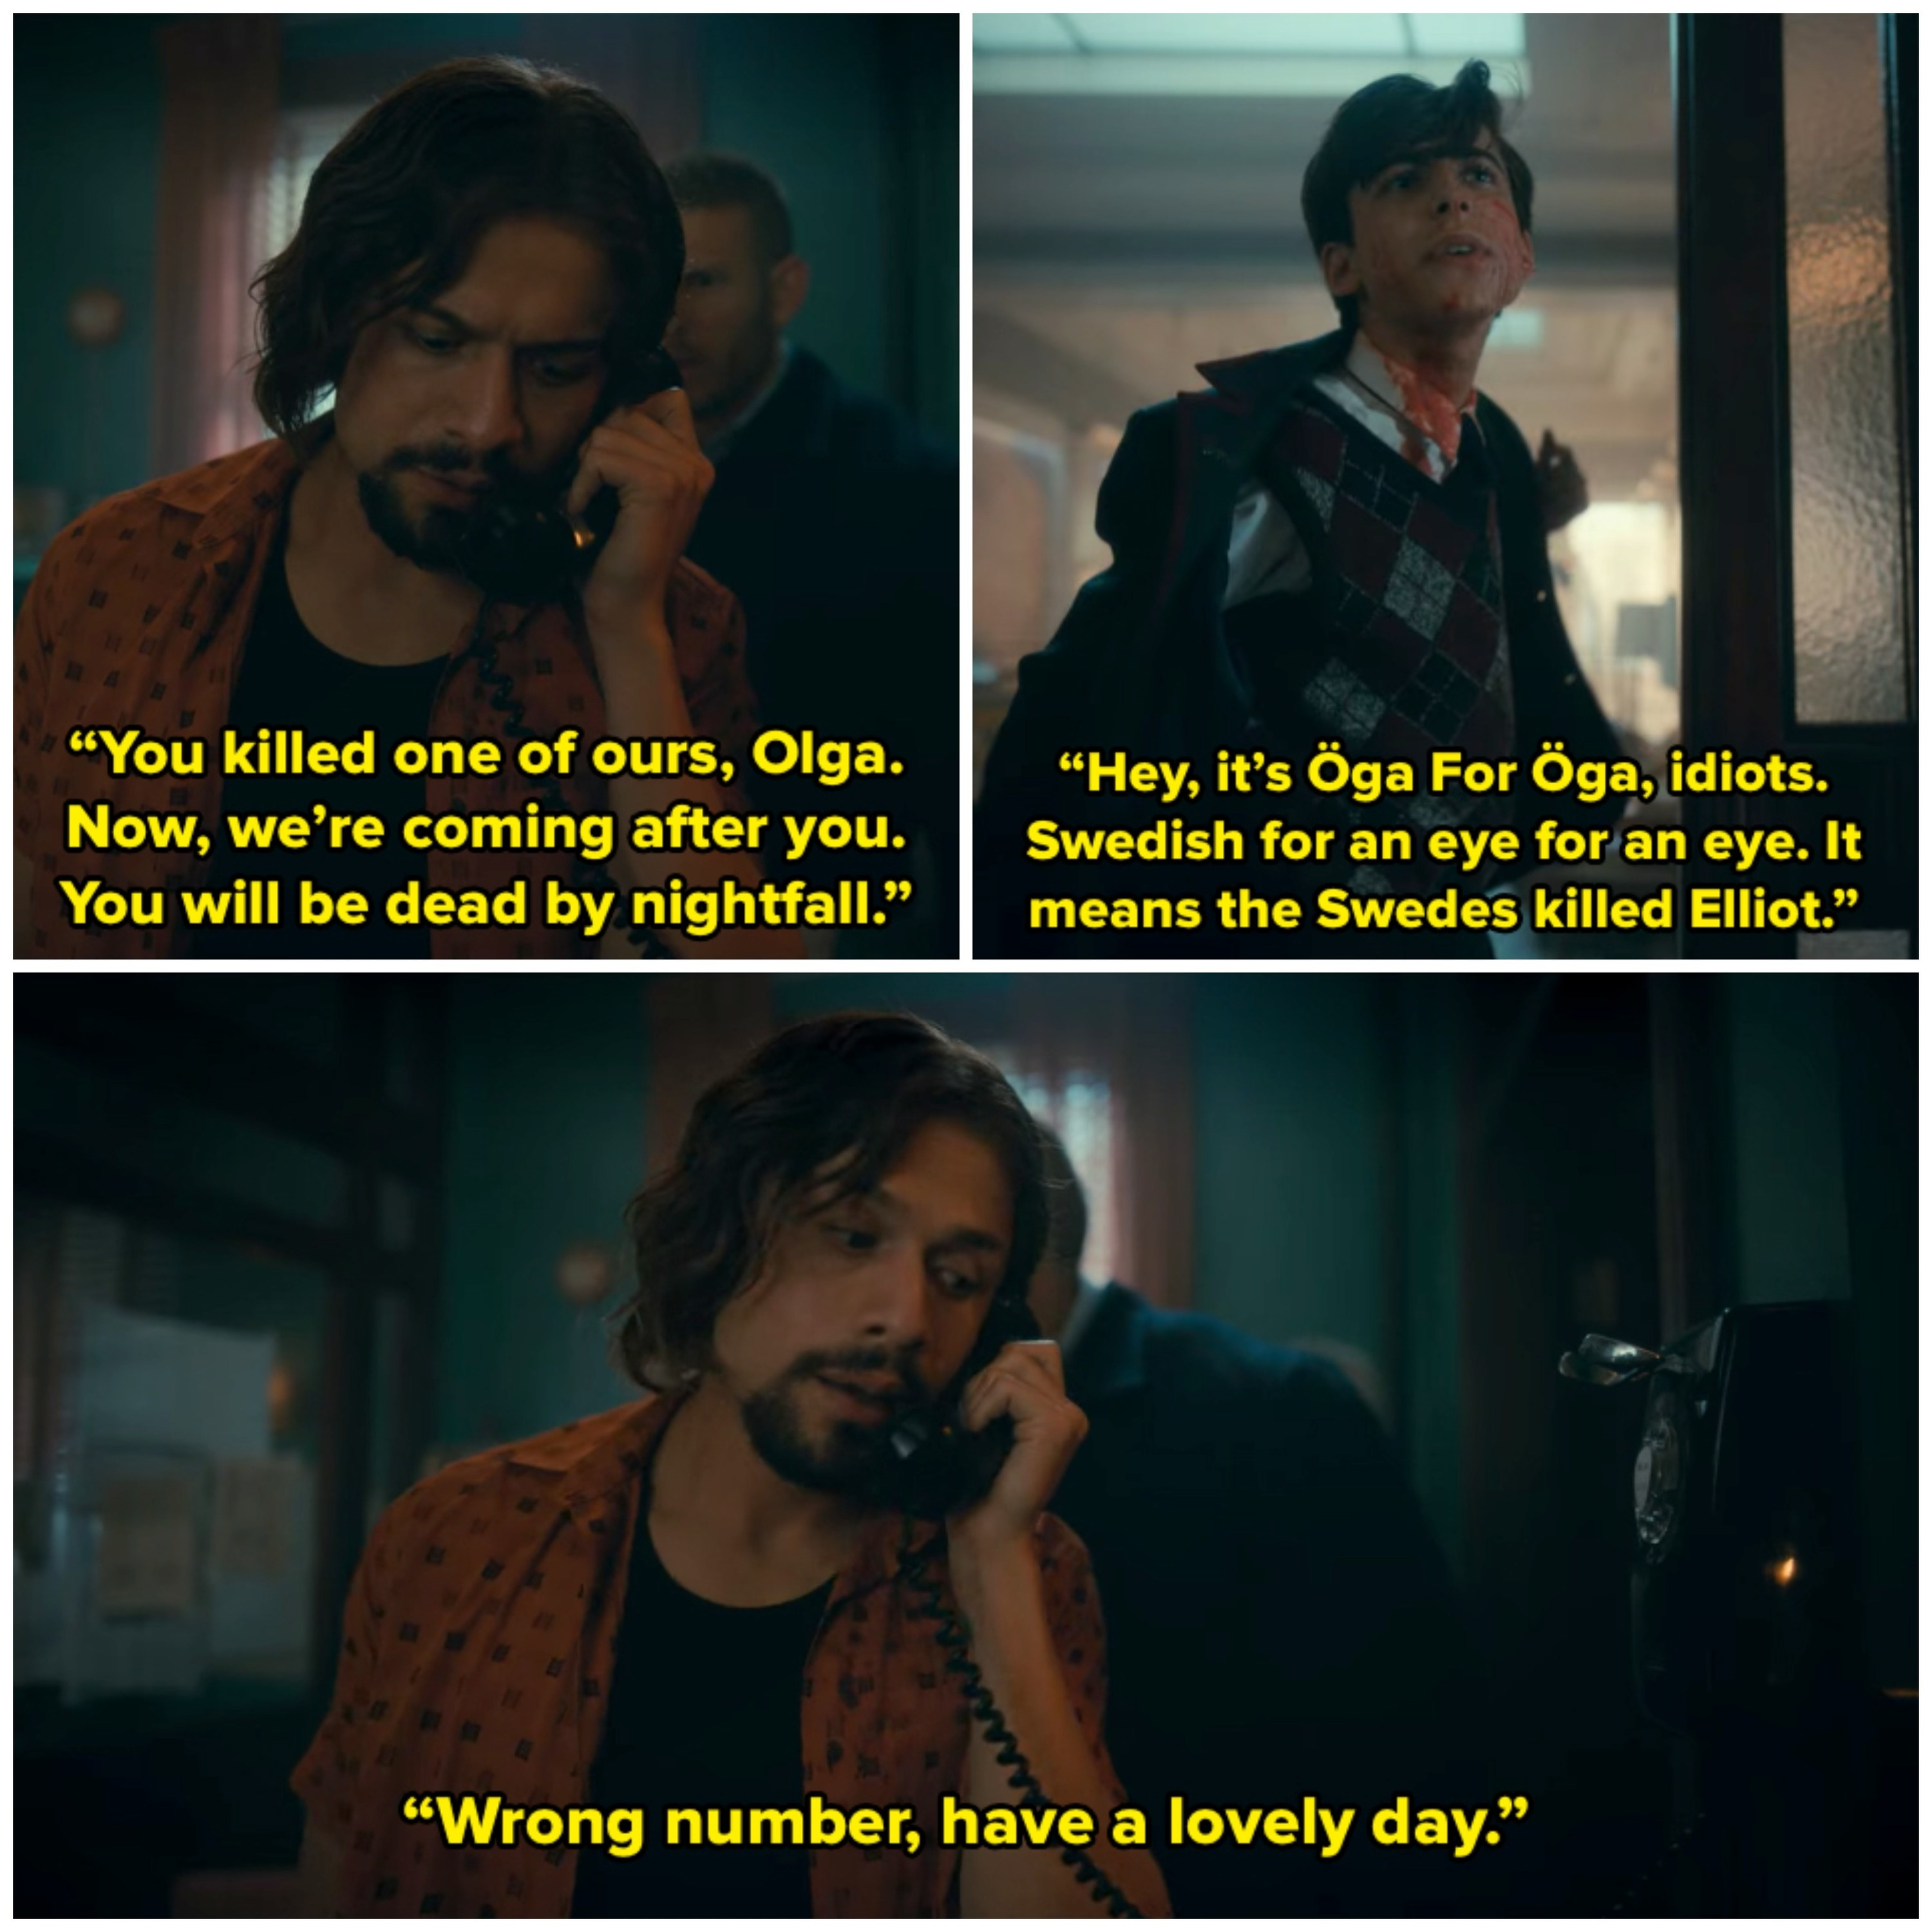 Diego is on the phone to a lady called Olga Foroga and threatens her. Five corrects him and explains how  Öga for Öga, idiots is a Swedish saying. Diego realises his mistake.